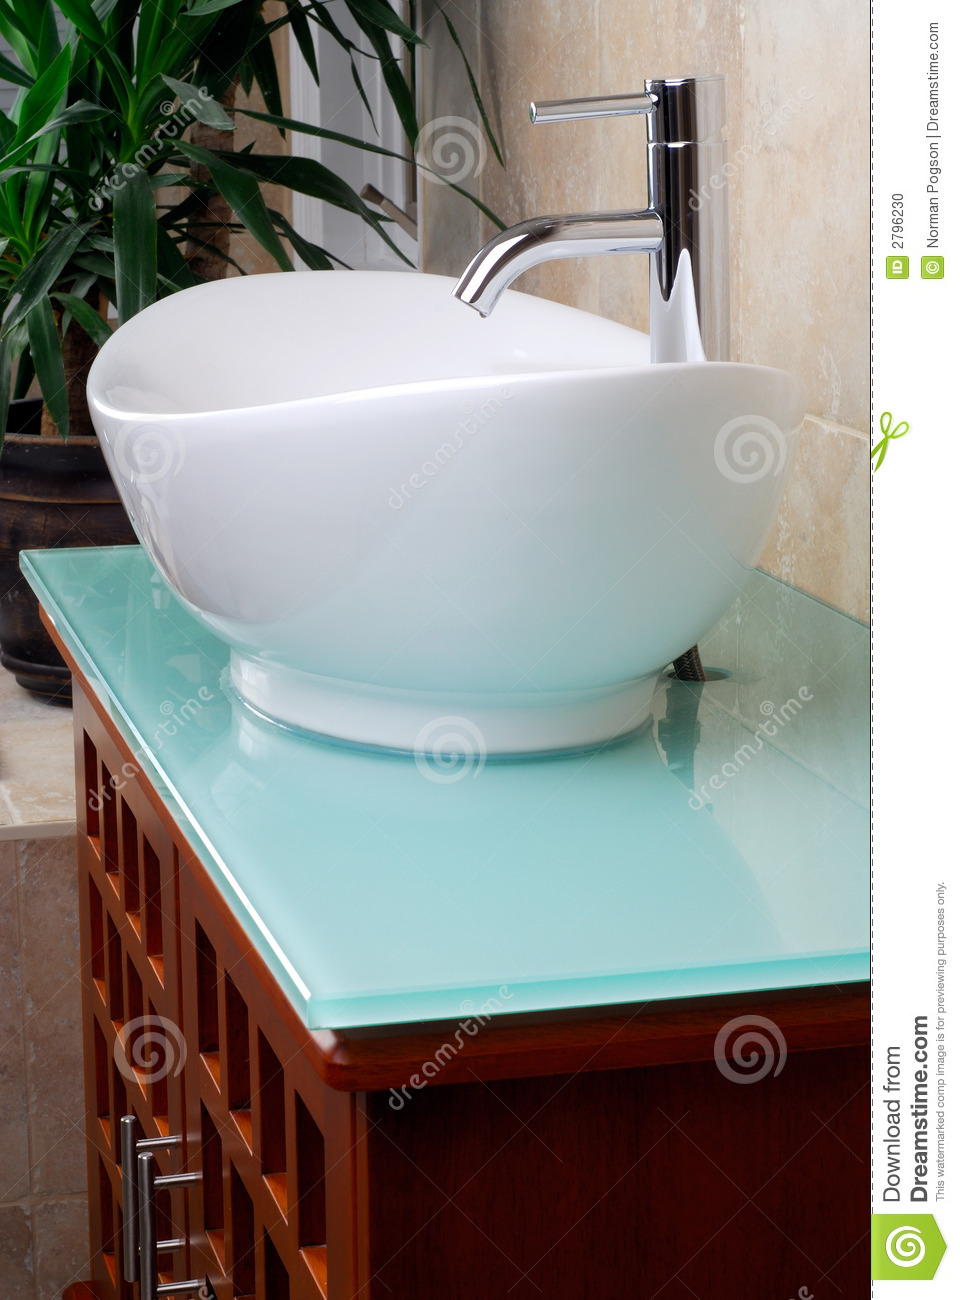 Modern bathroom vanity sink stock photo image 2796230 for Modern bathroom sink and vanity